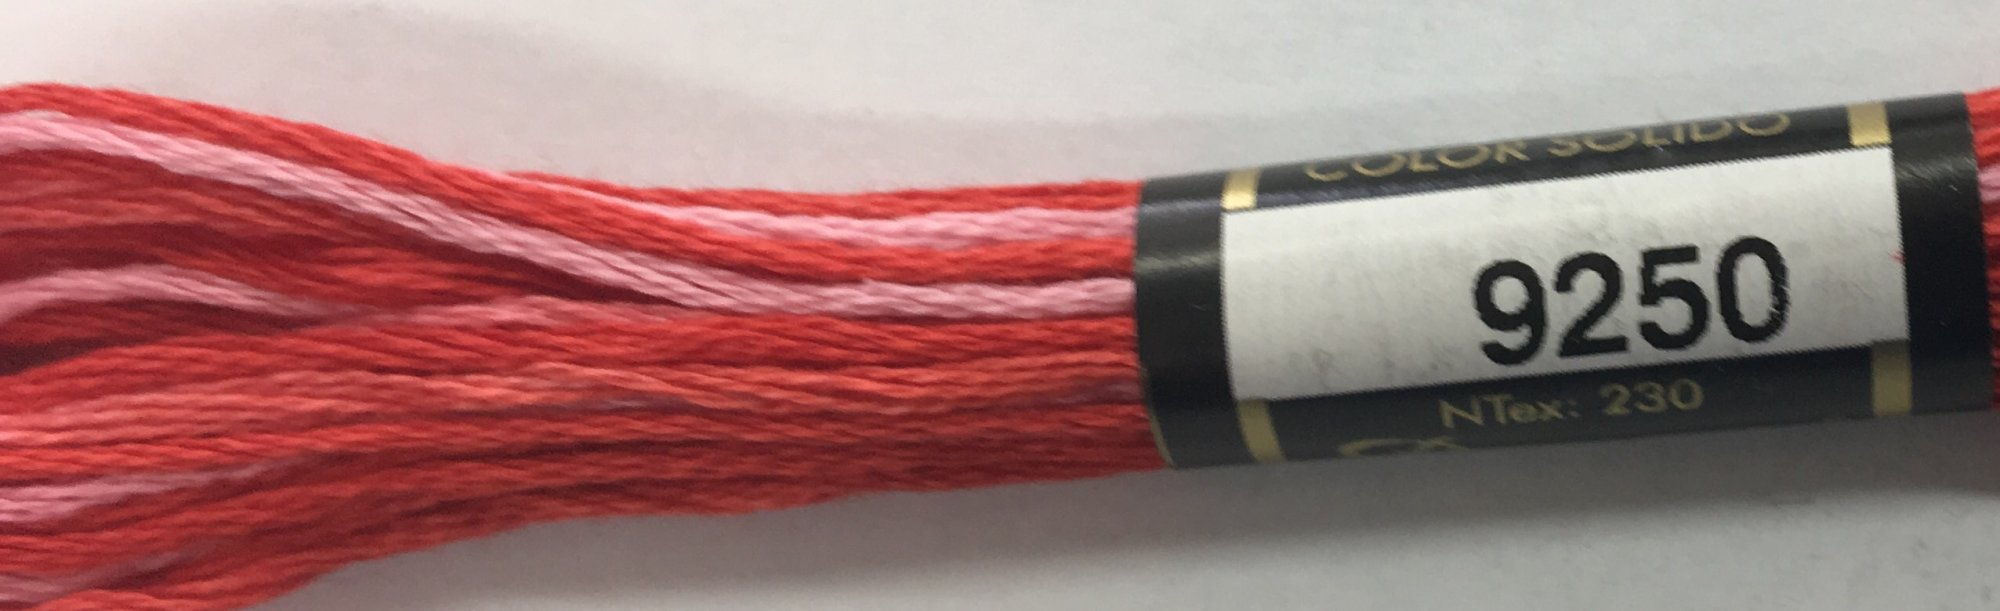 F9250 Presencia 100% Mercerized Finca Varigated Cotton 6 ply Embroidery Floss 8 meter skein